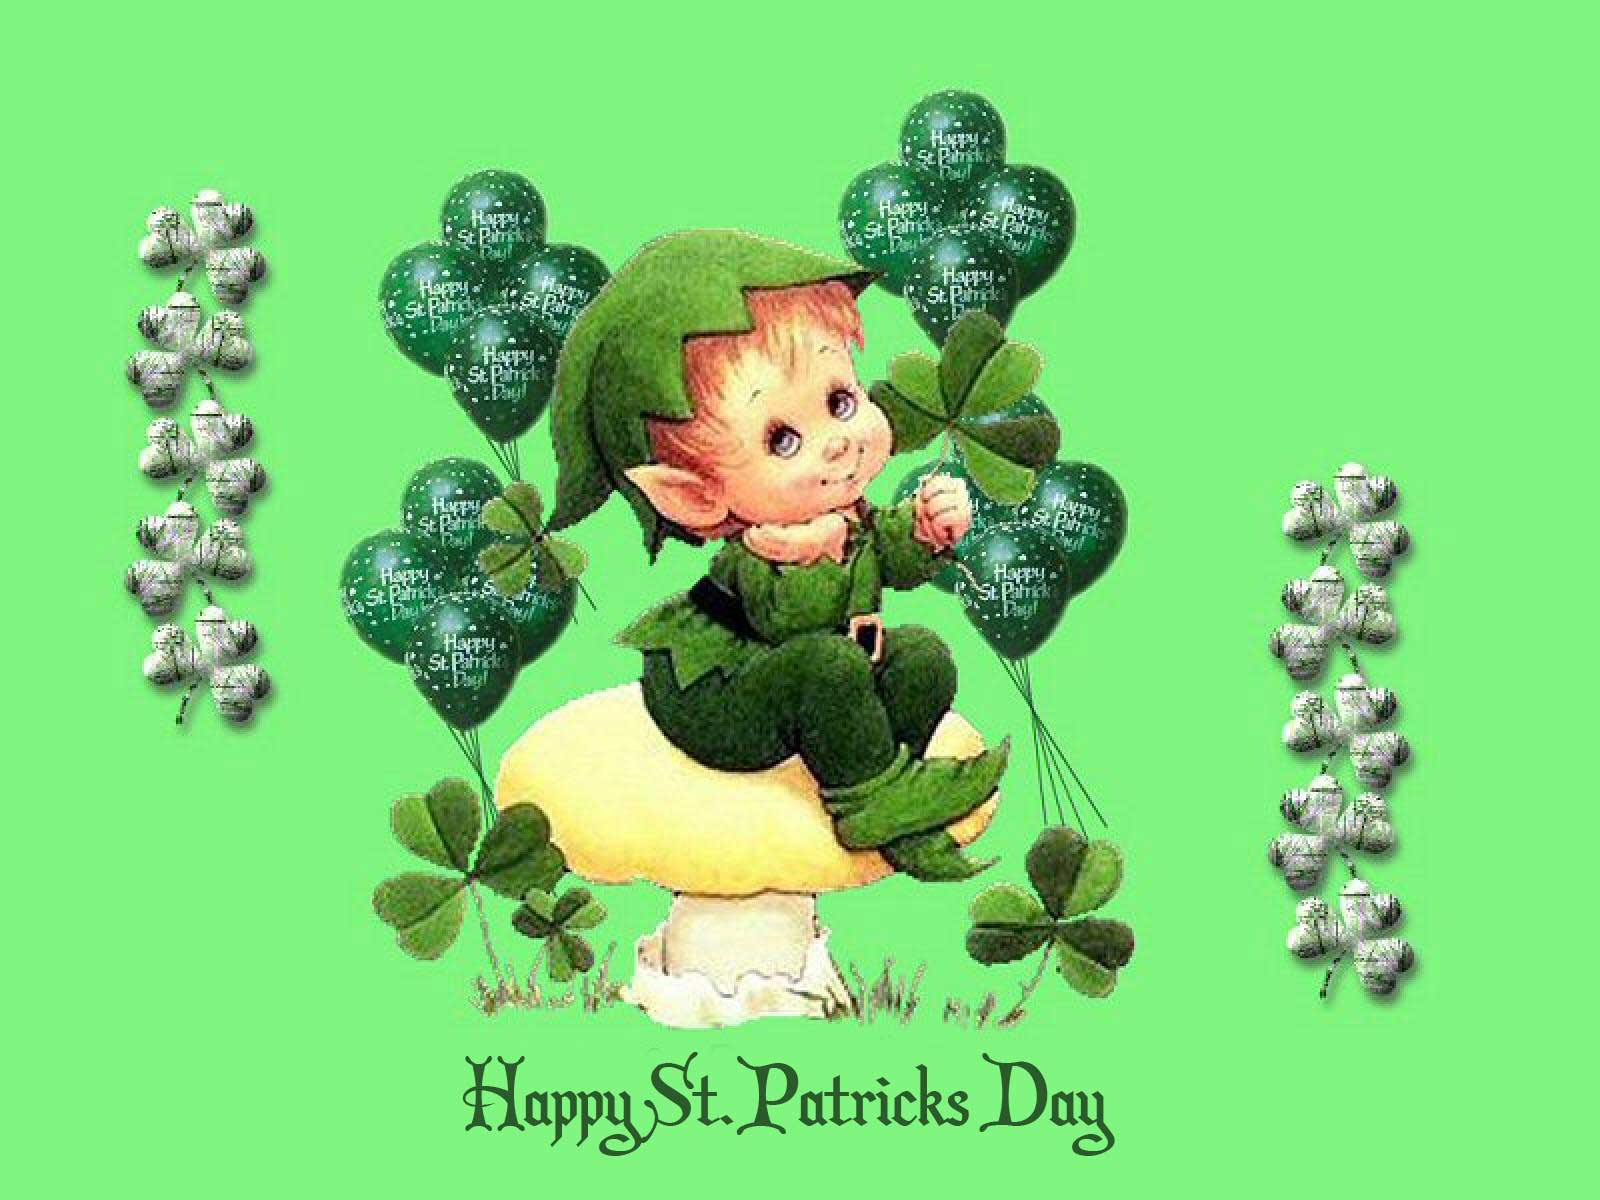 Saint Patrick's Day 2014 - Wallpaper, High Definition, High Quality ...